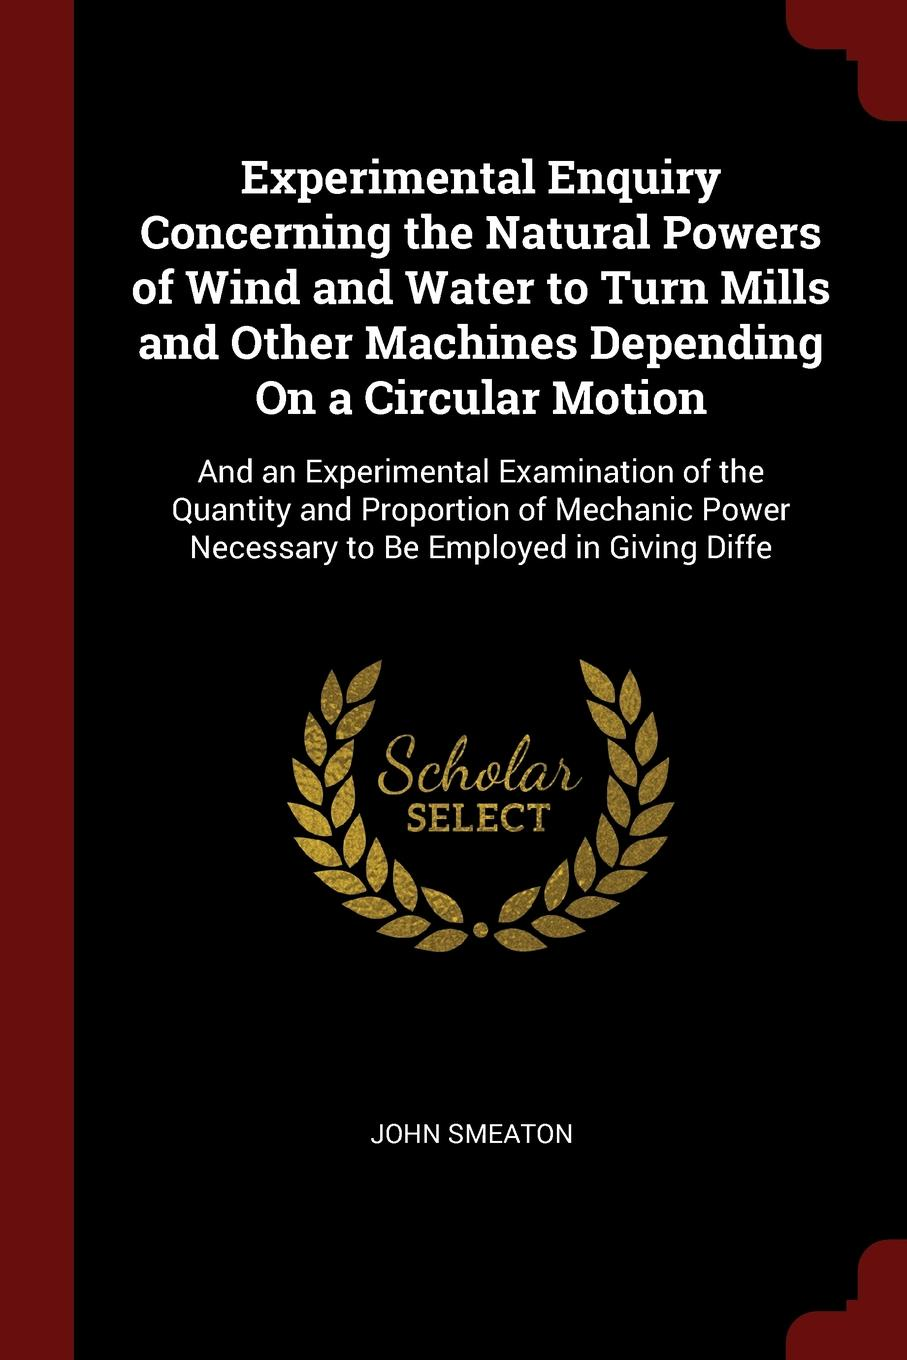 Experimental Enquiry Concerning the Natural Powers of Wind and Water to Turn Mills and Other Machines Depending On a Circular Motion. And an Experimental Examination of the Quantity and Proportion of Mechanic Power Necessary to Be Employed in Givi...